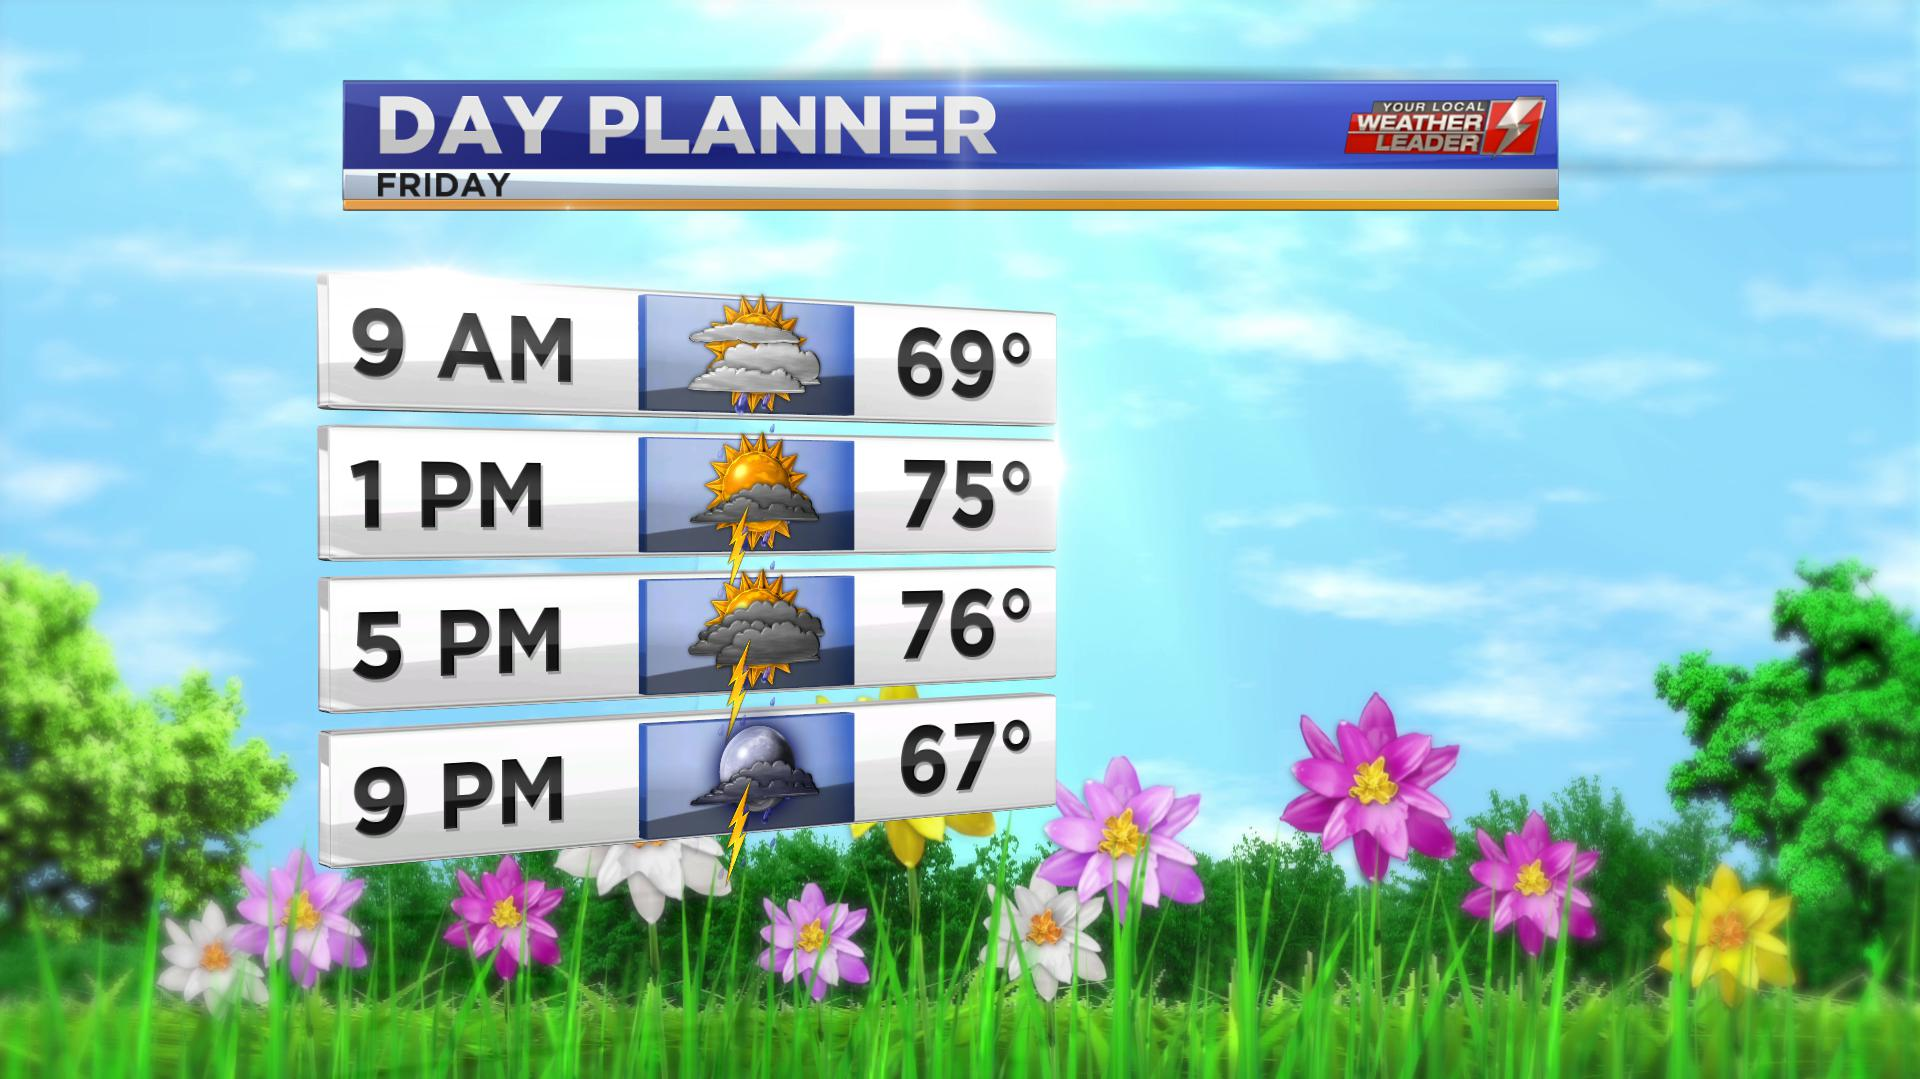 Day Planner for Friday 10 May 2019